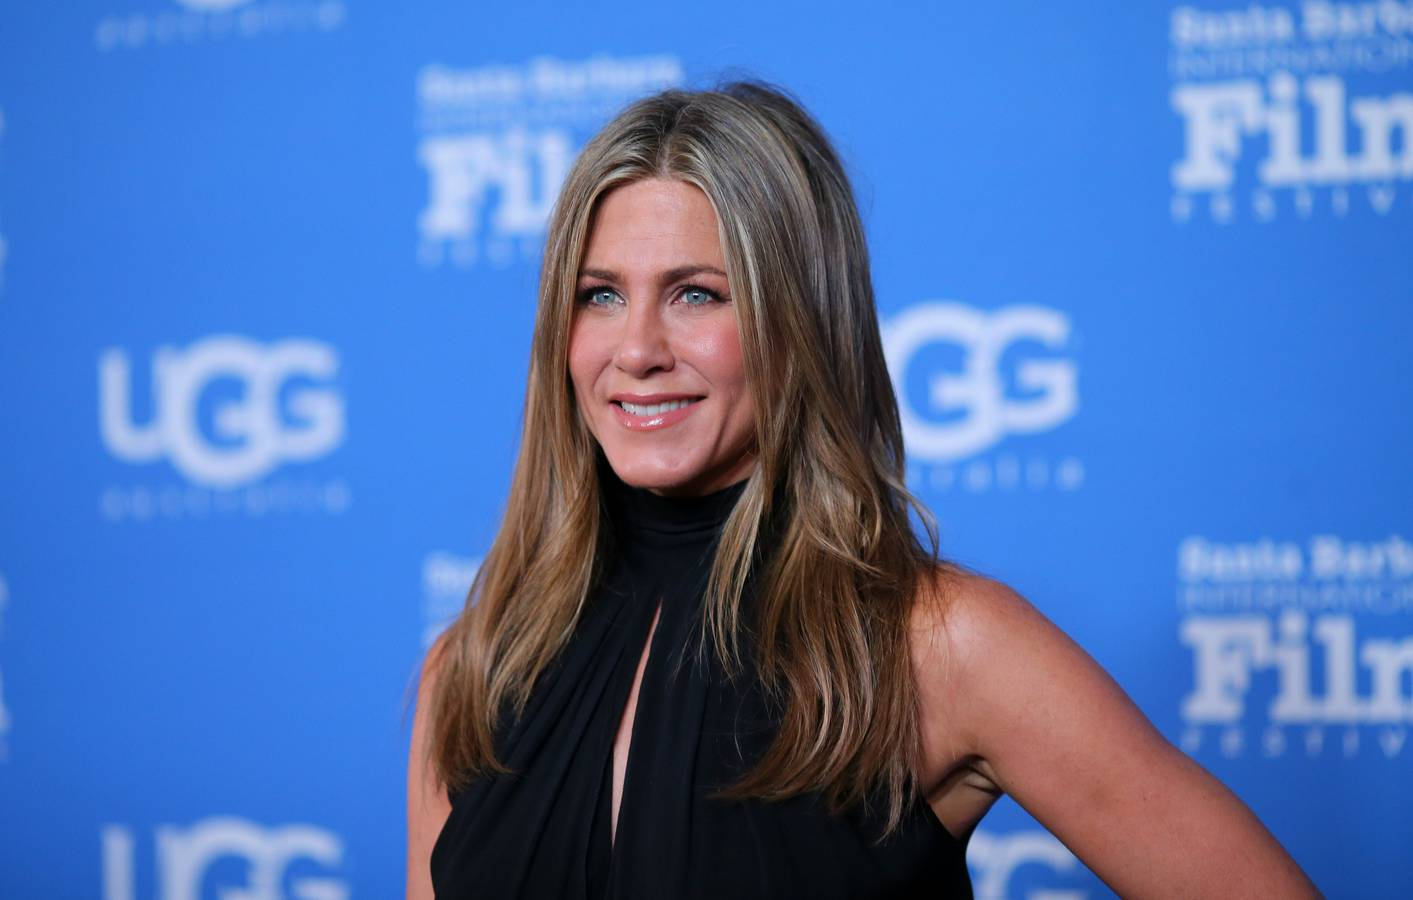 Jennifer Aniston hat jetzt einen Instagram-Account. (© Getty Images)